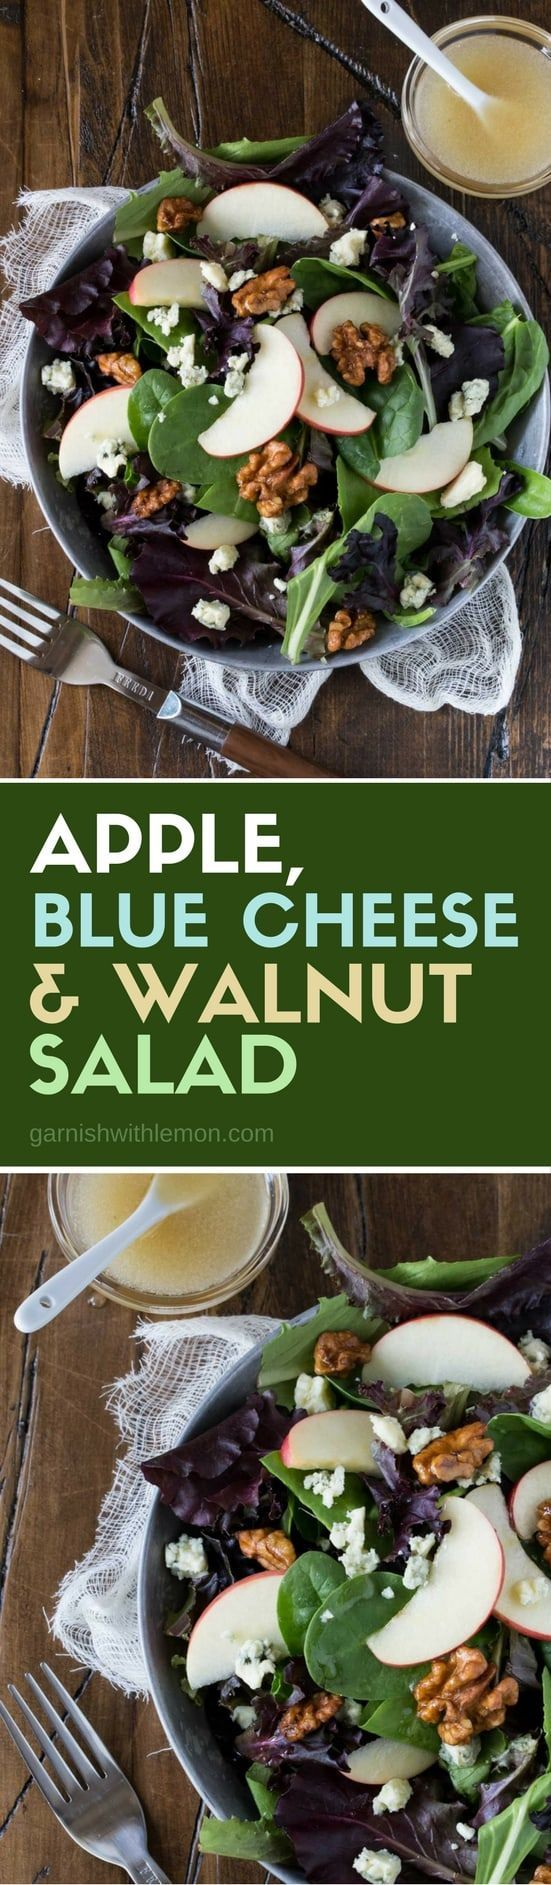 Salads don't have to be boring! One bite of this Apple, Blue Cheese and Walnut Salad and you will never buy bottled dressing again!